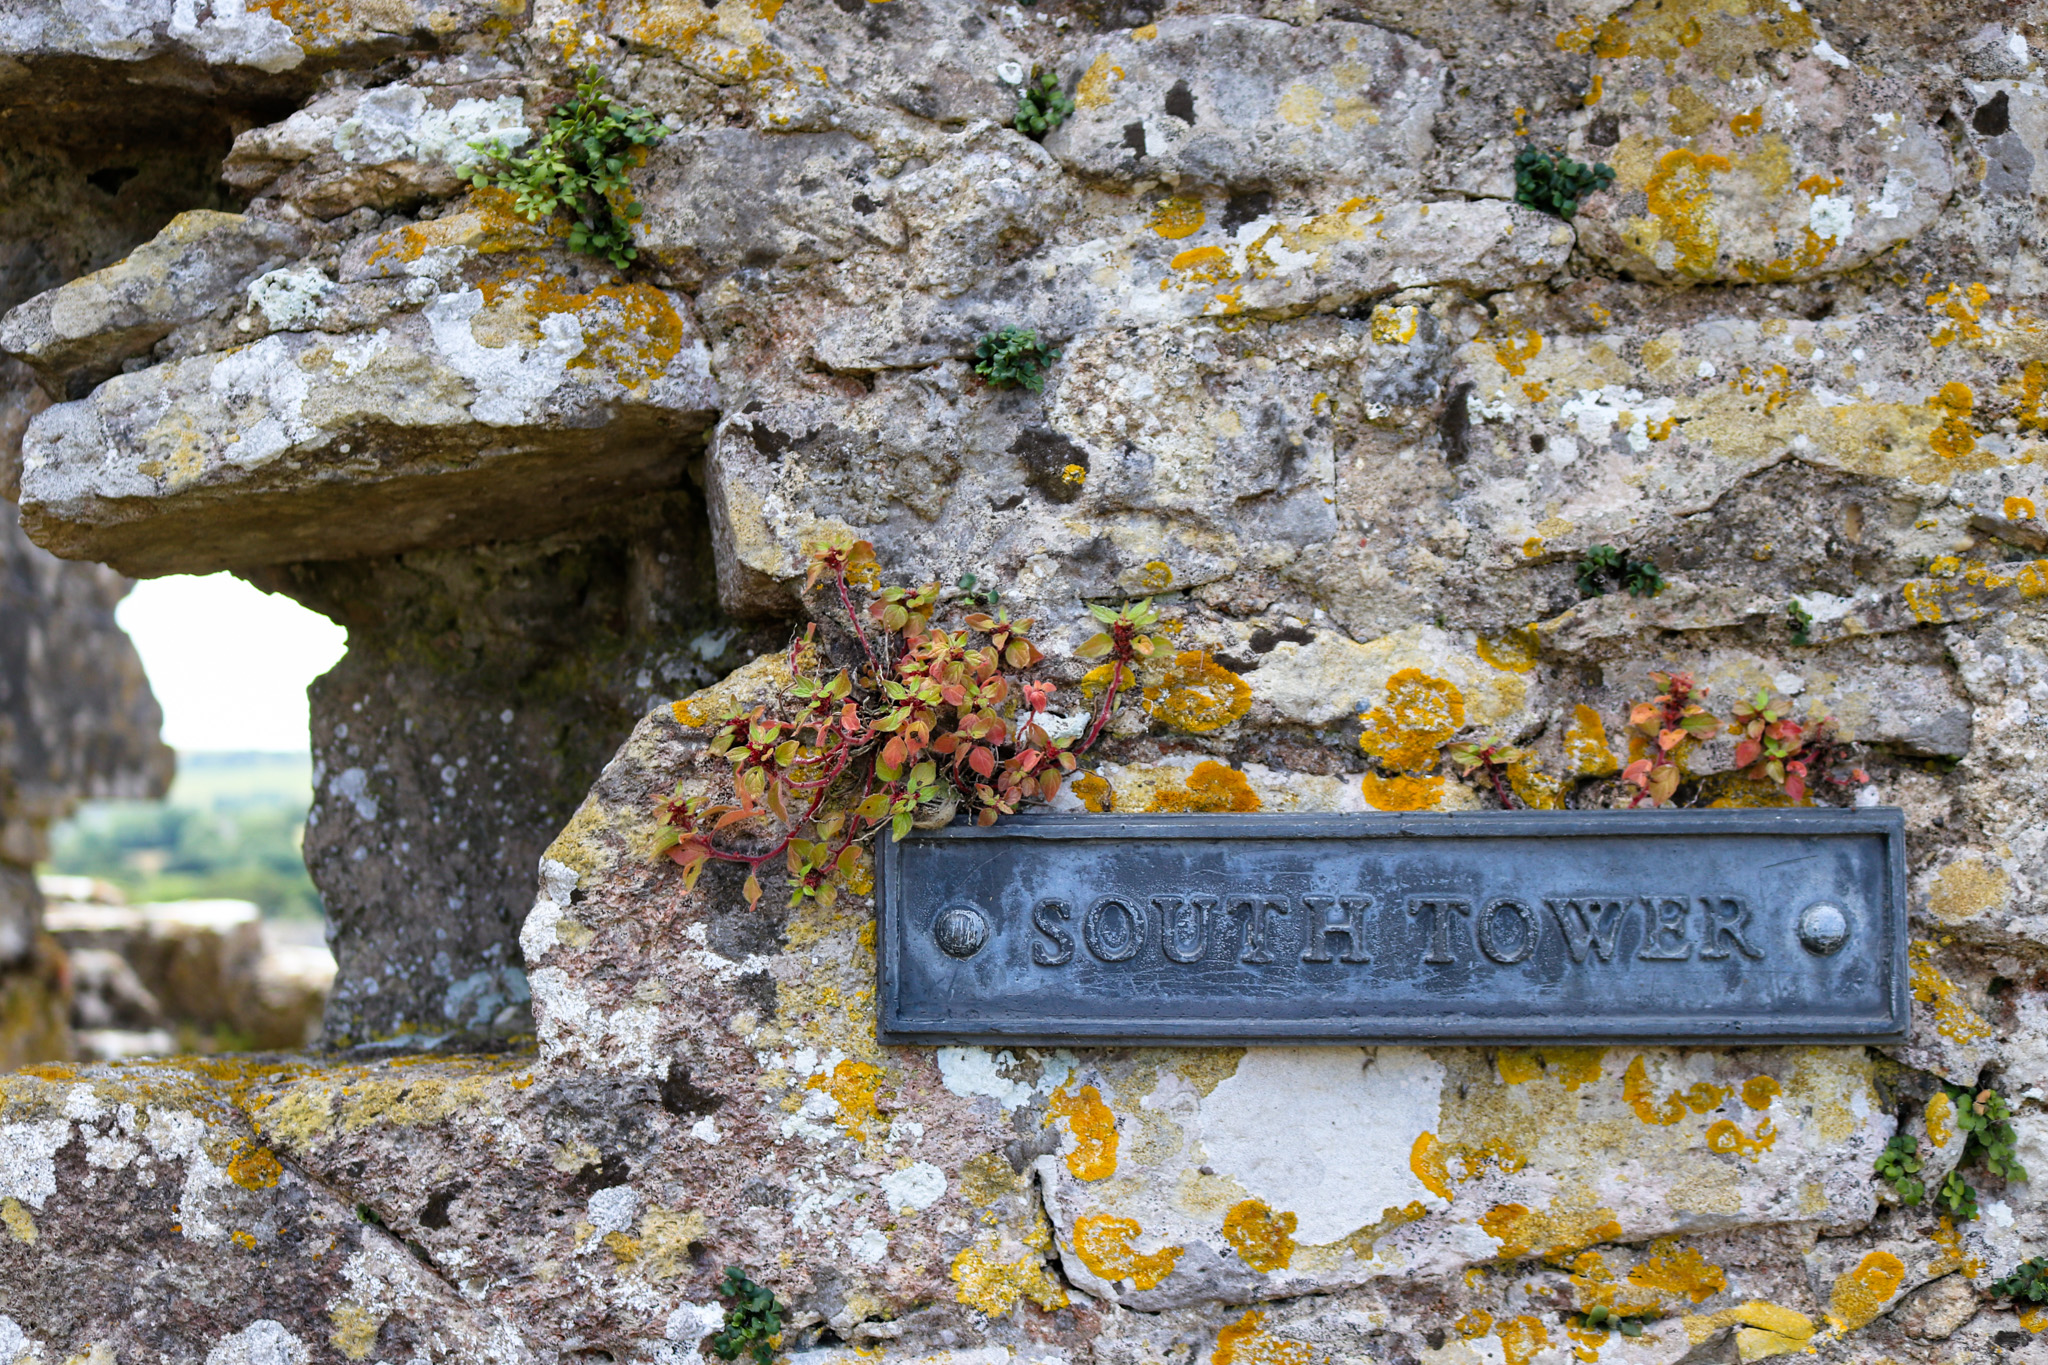 South Tower sign on wall at Corfe Castle